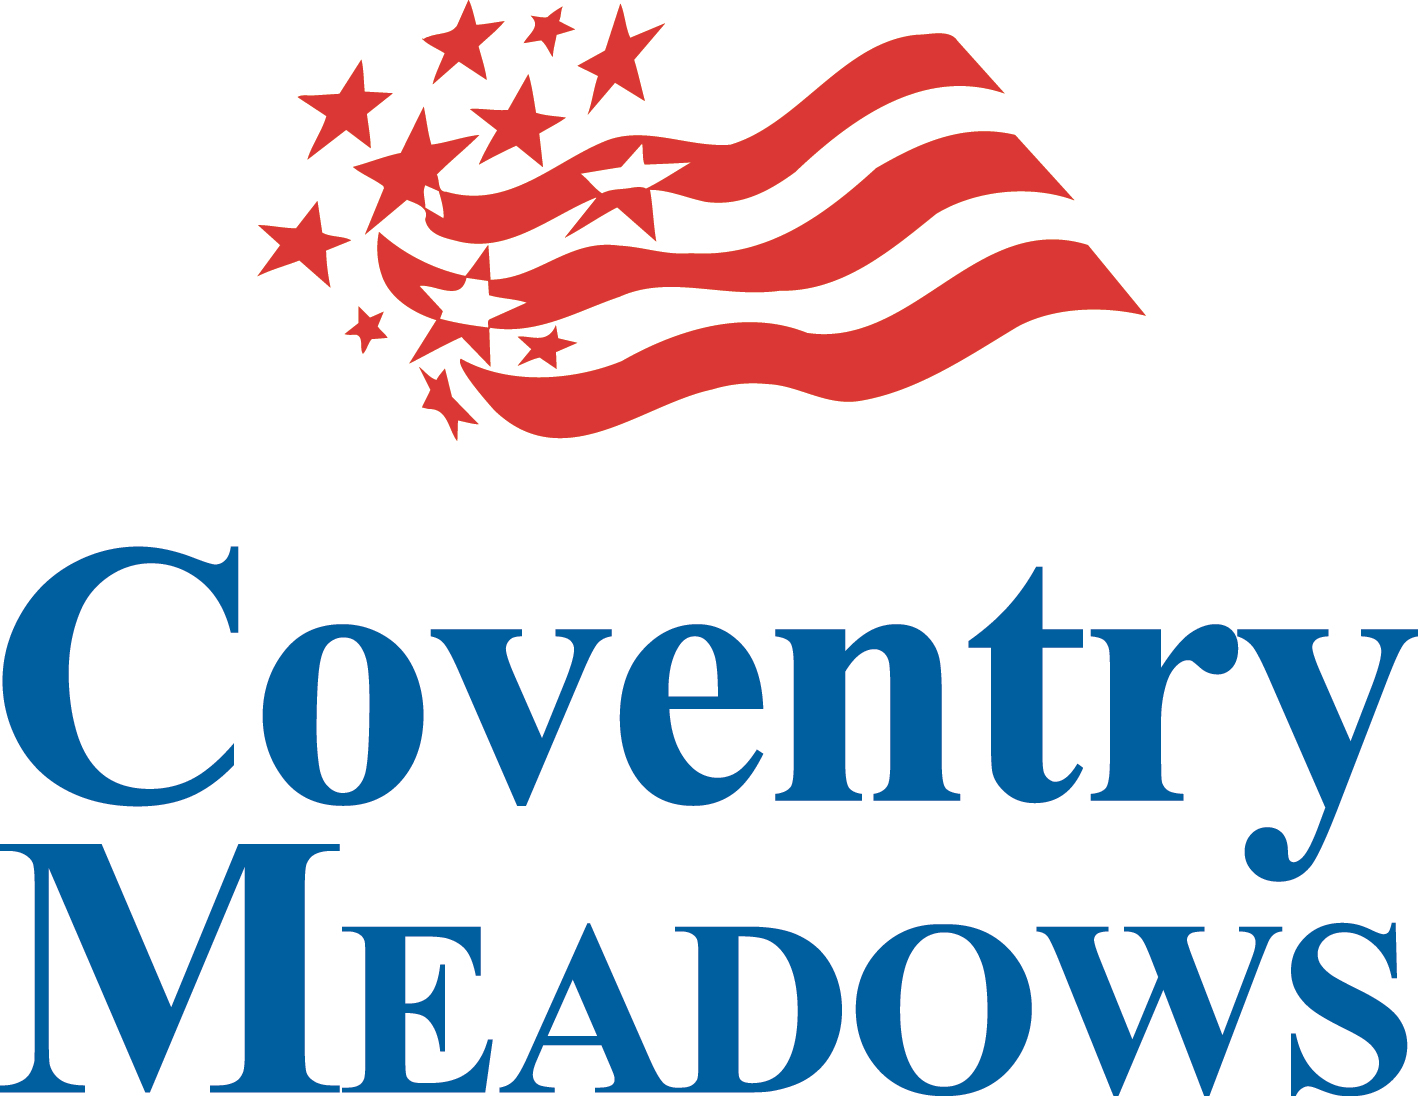 Coventry Meadows